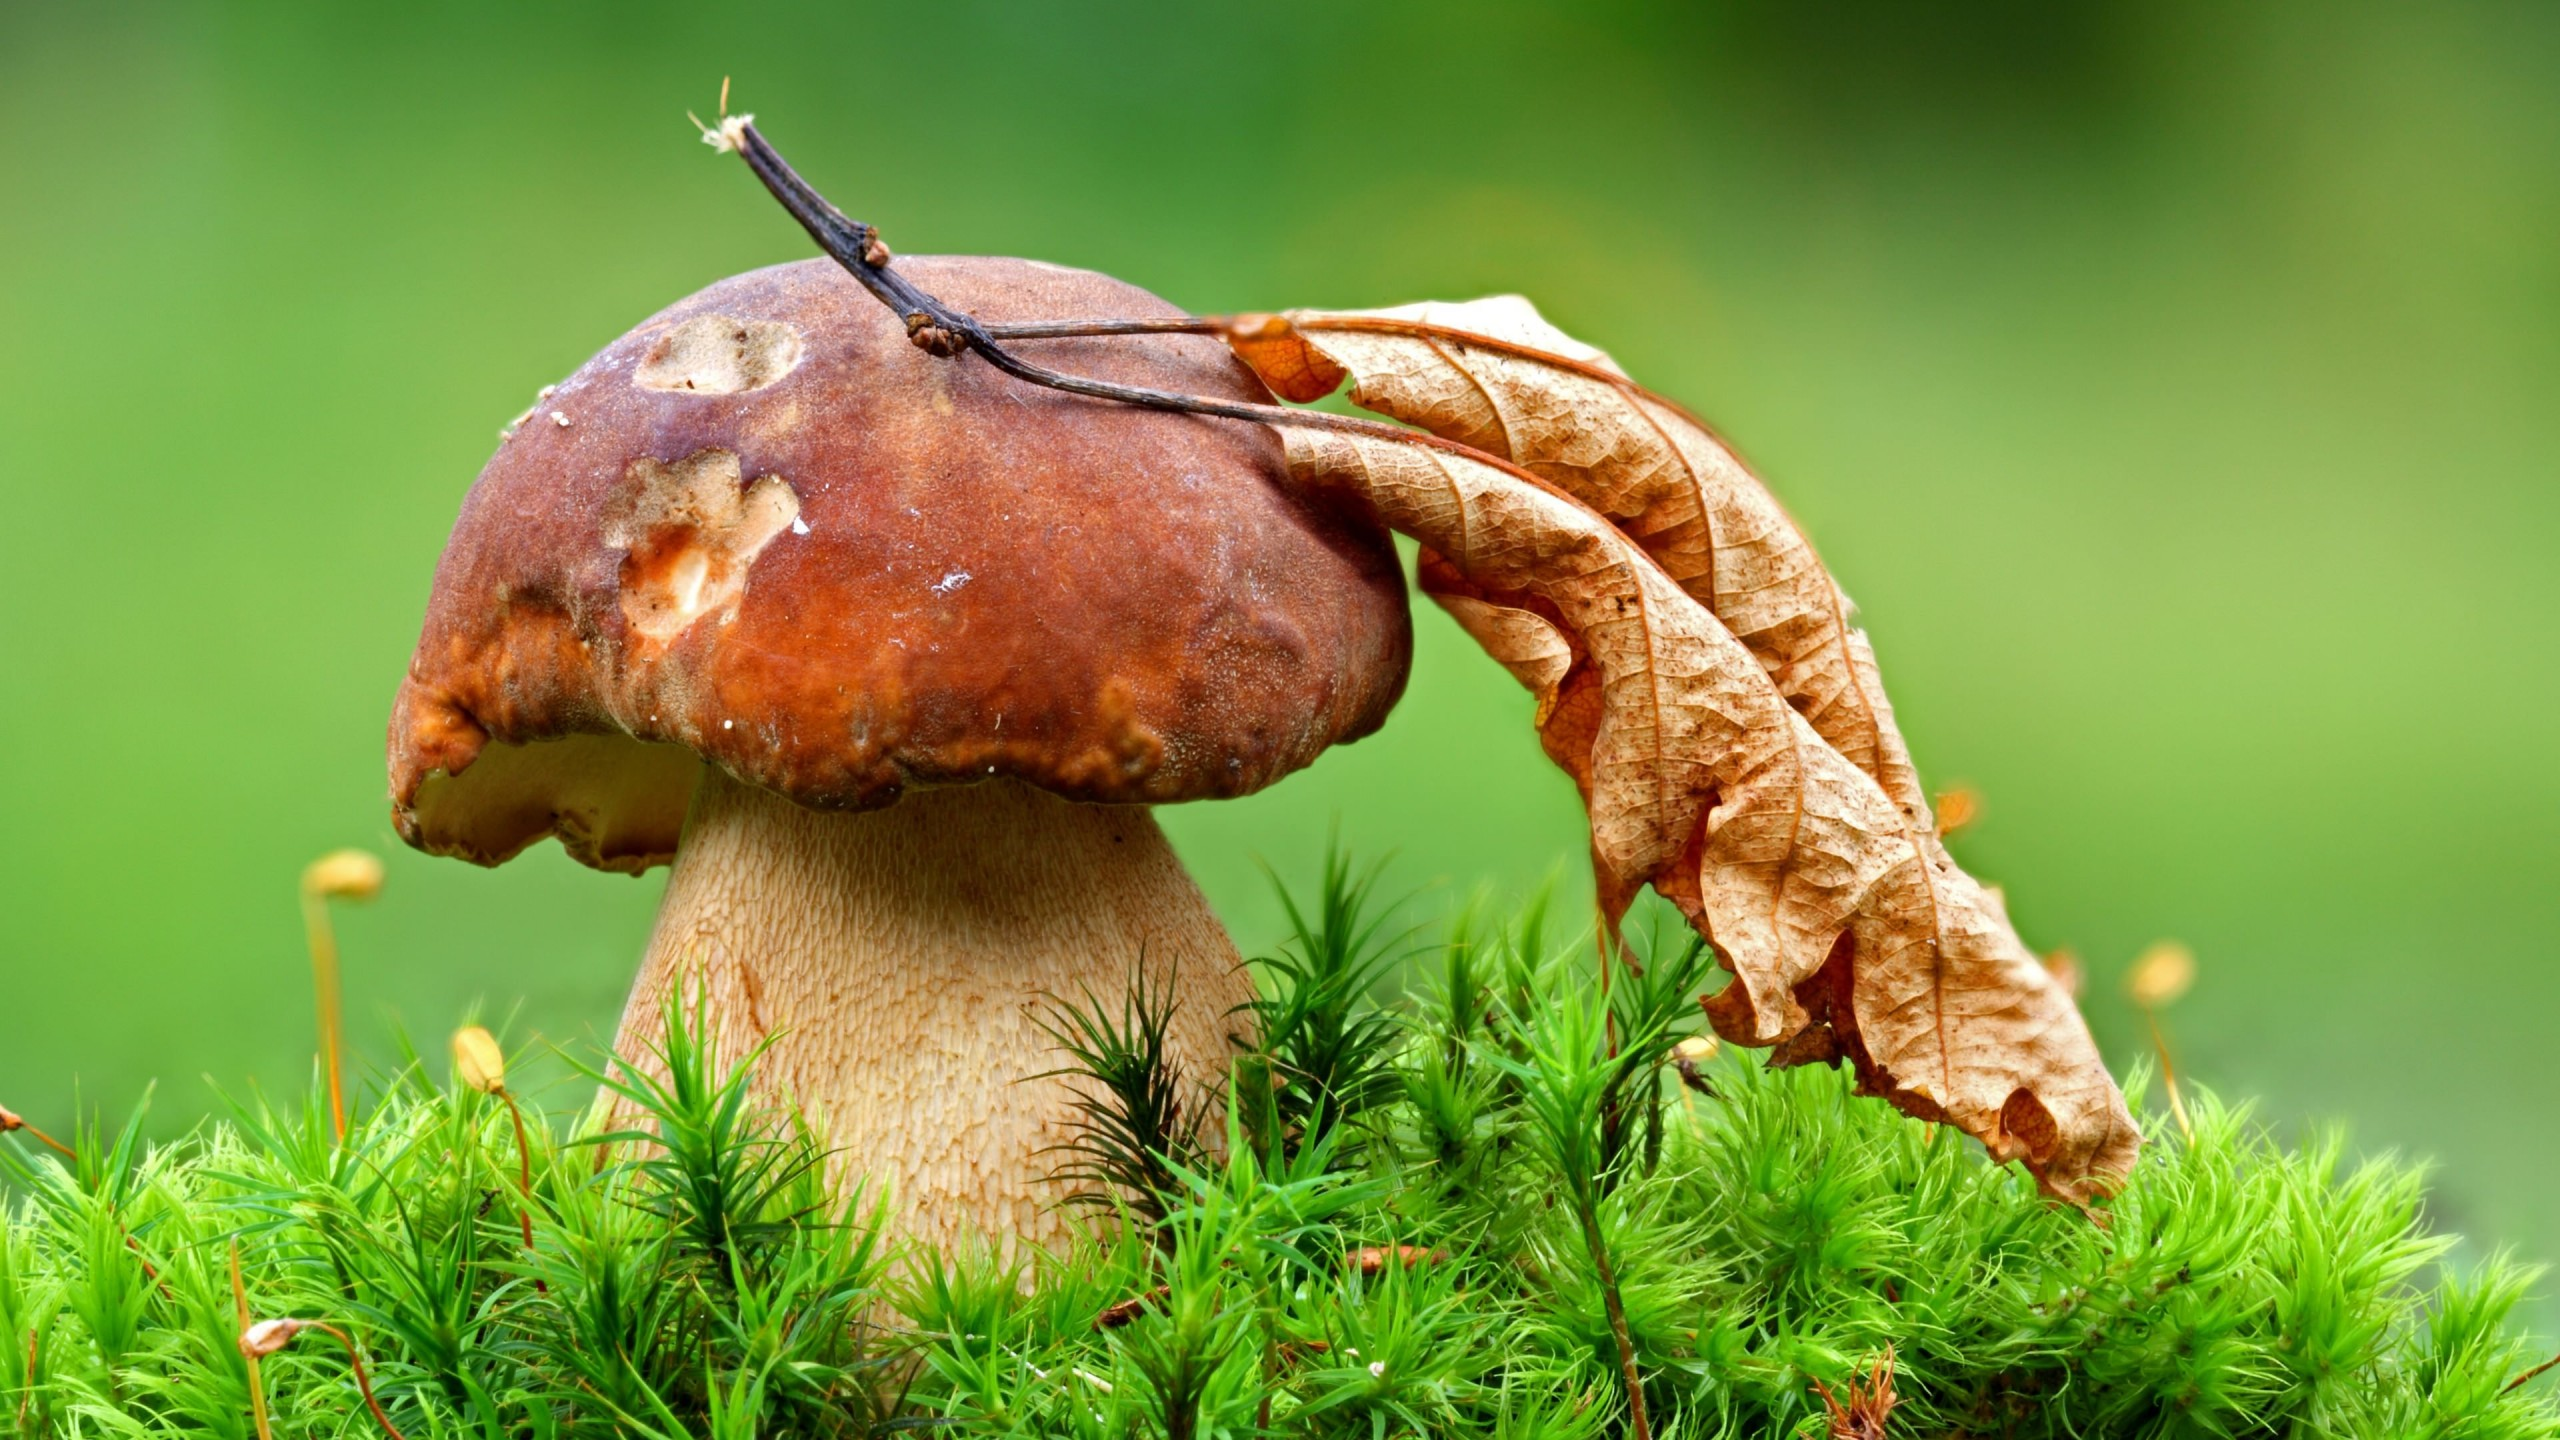 Mushroom Wallpaper for Desktop 2560x1440